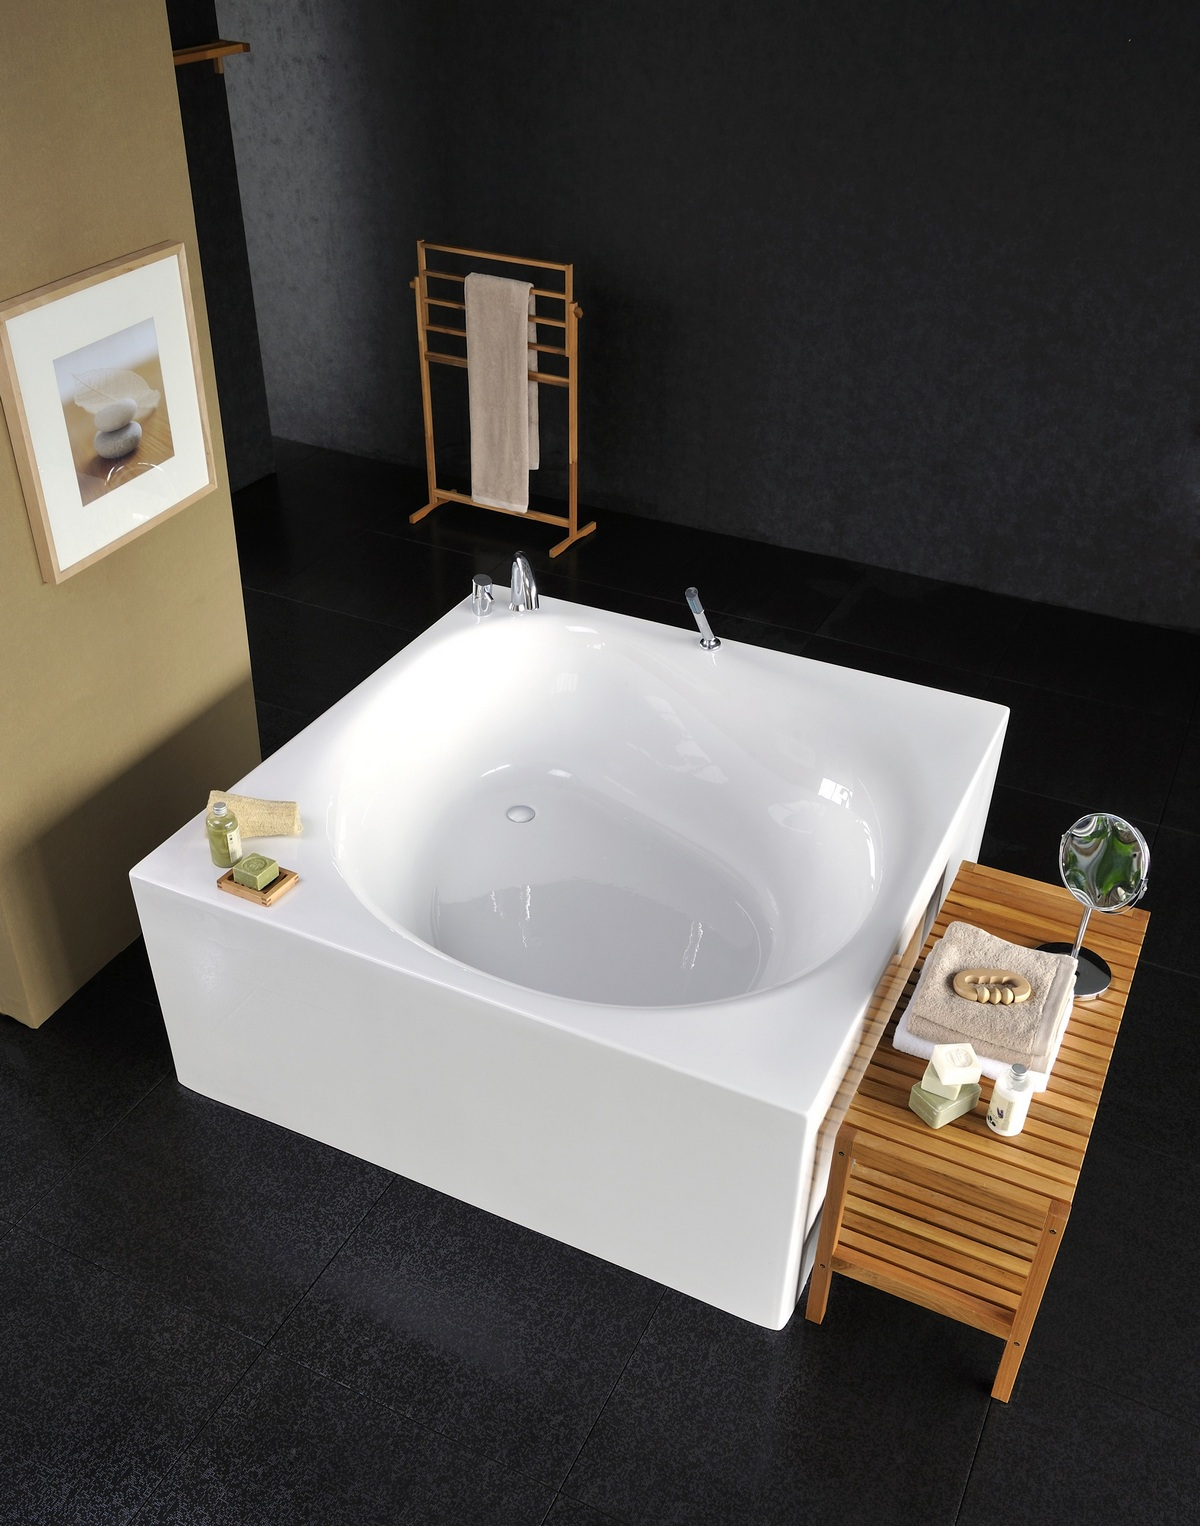 Square Tub Aquatica Liquid Space Freestanding Acrylic Bathtub